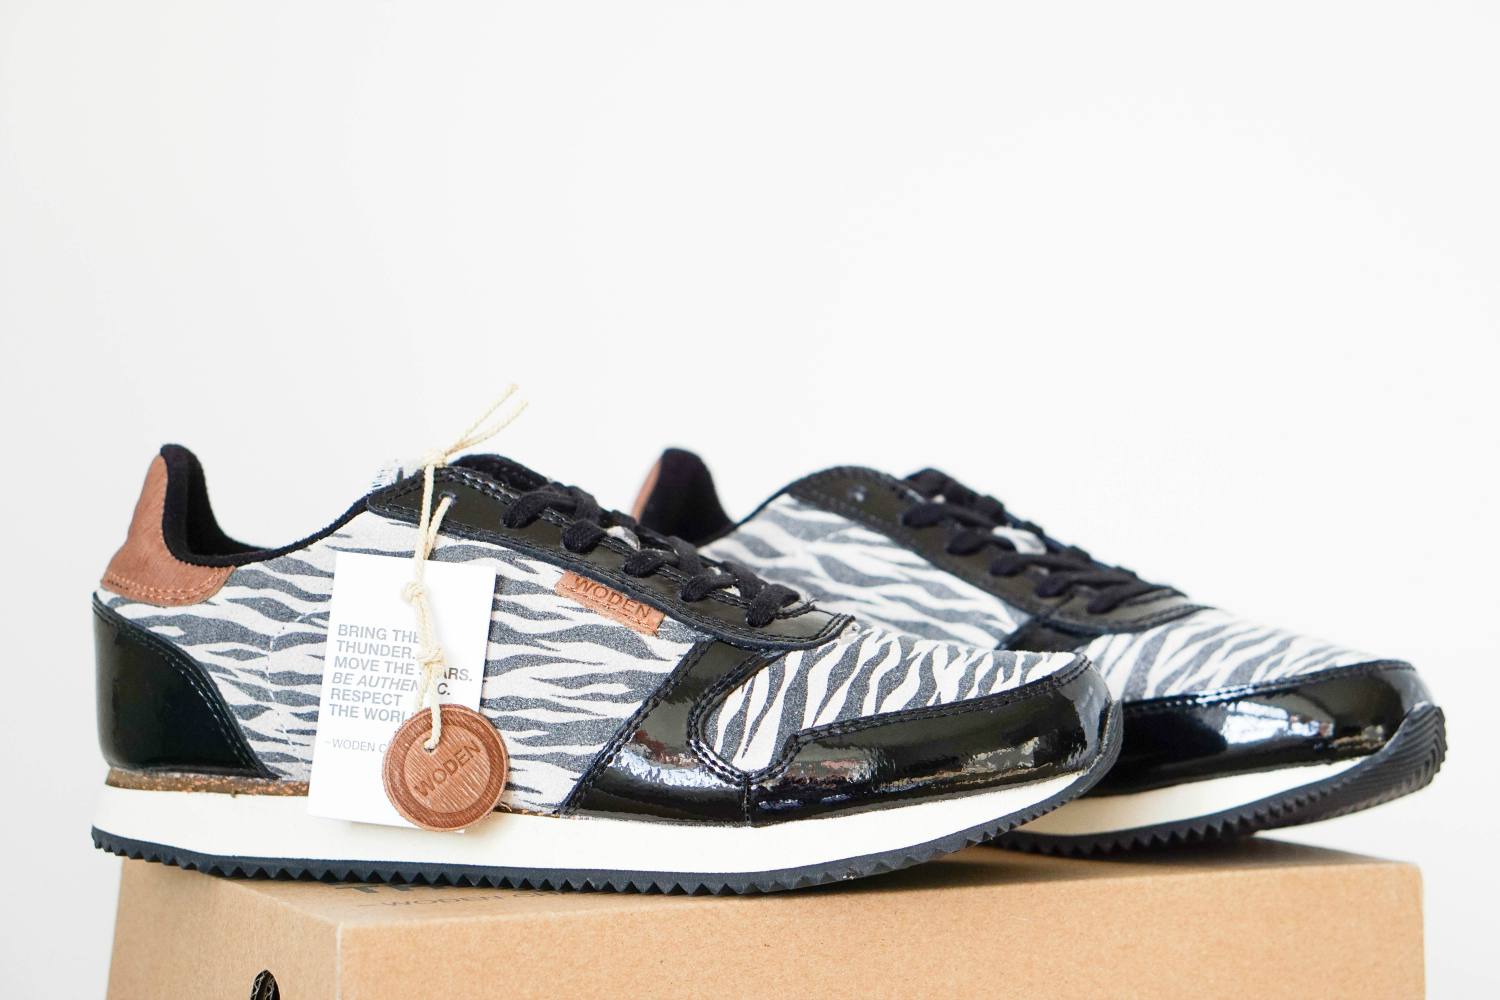 The Ordinary Lovely: Woden ... the Scandinavian sneakers movement